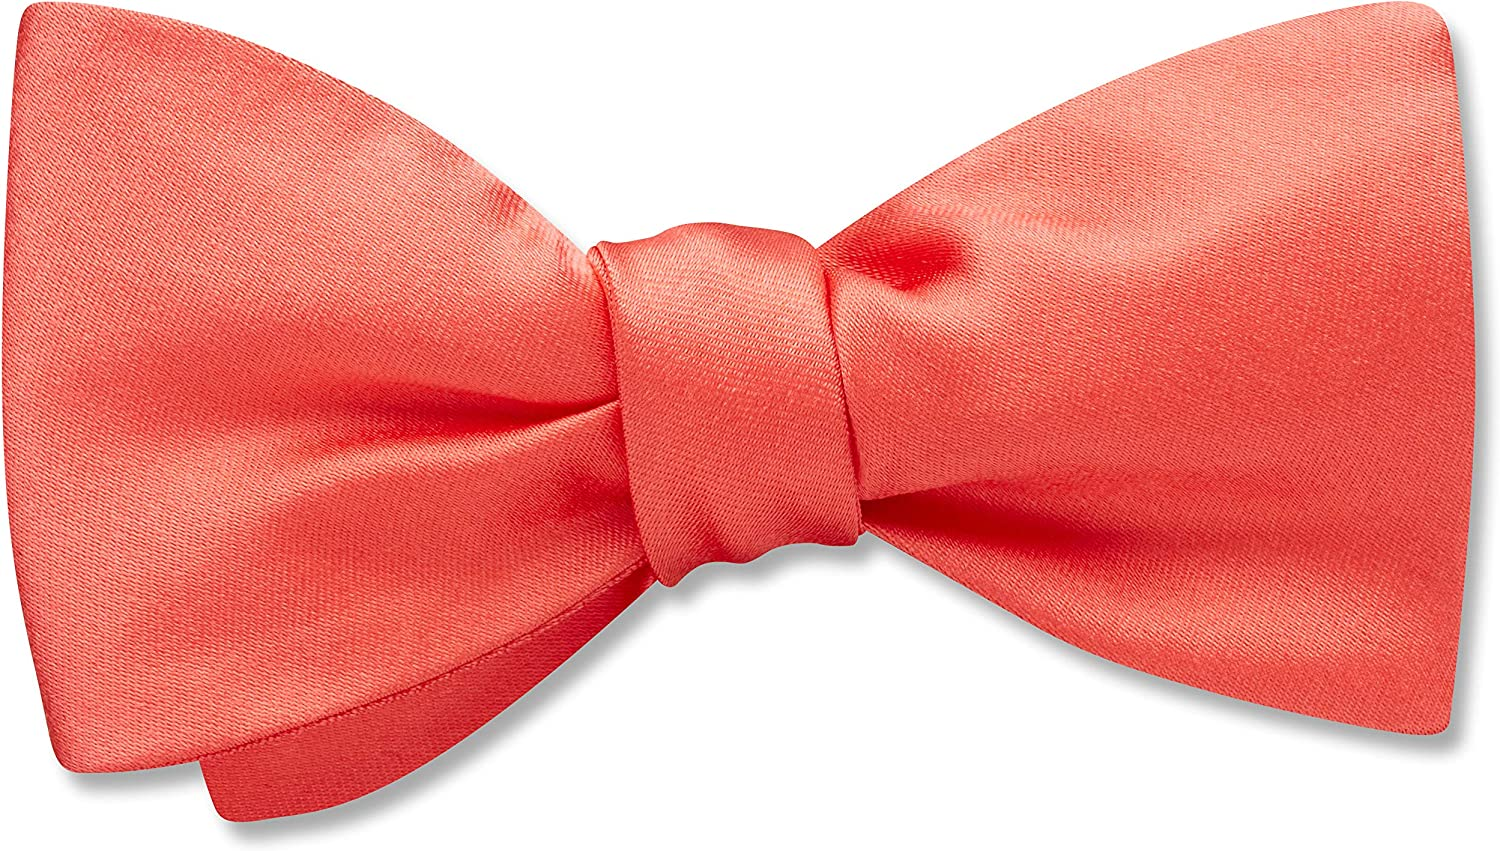 Somerville Coral Orange,Pink Solid, Men's Bow Tie, Handmade in the USA